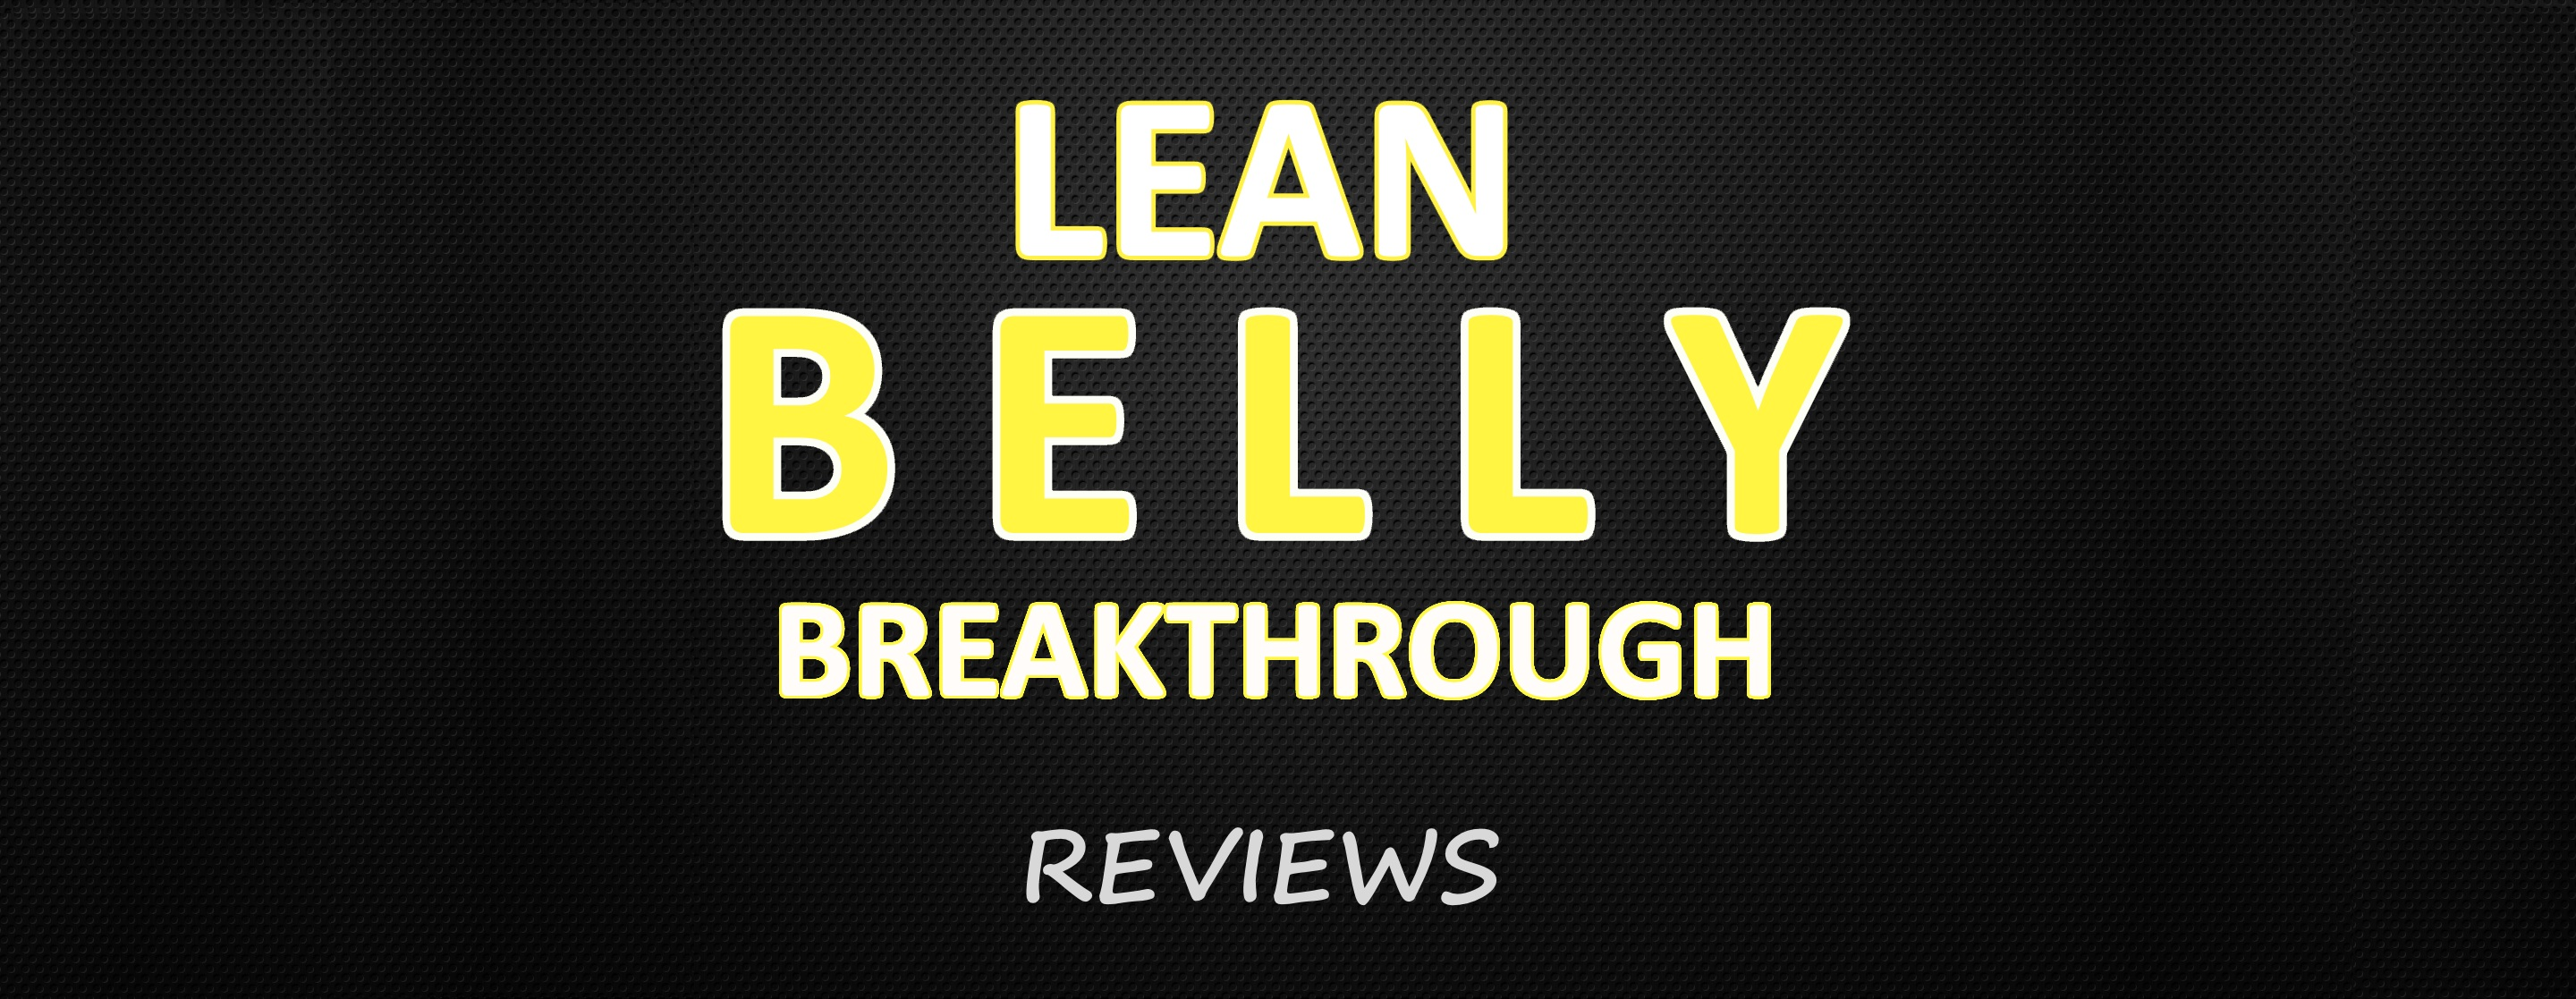 lean-belly-breakthrough